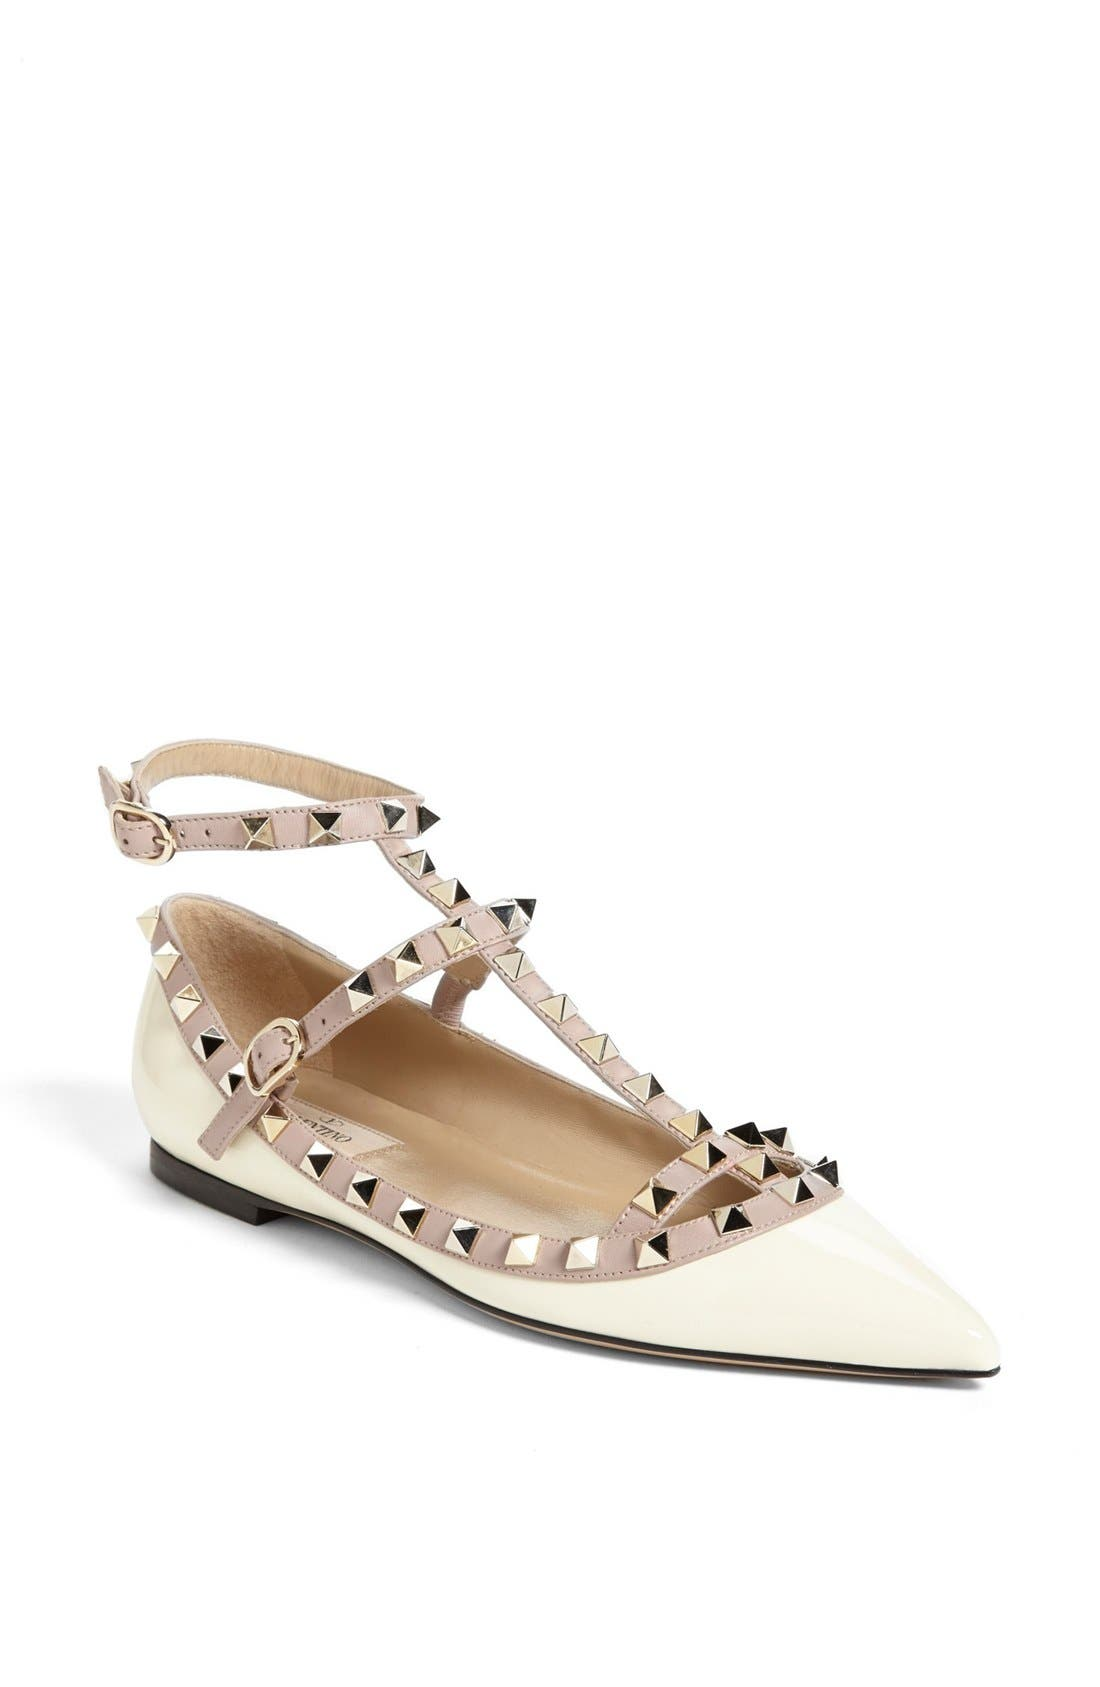 Alternate Image 1 Selected - Valentino 'Rockstud' Double Ankle Strap Ballet Flat